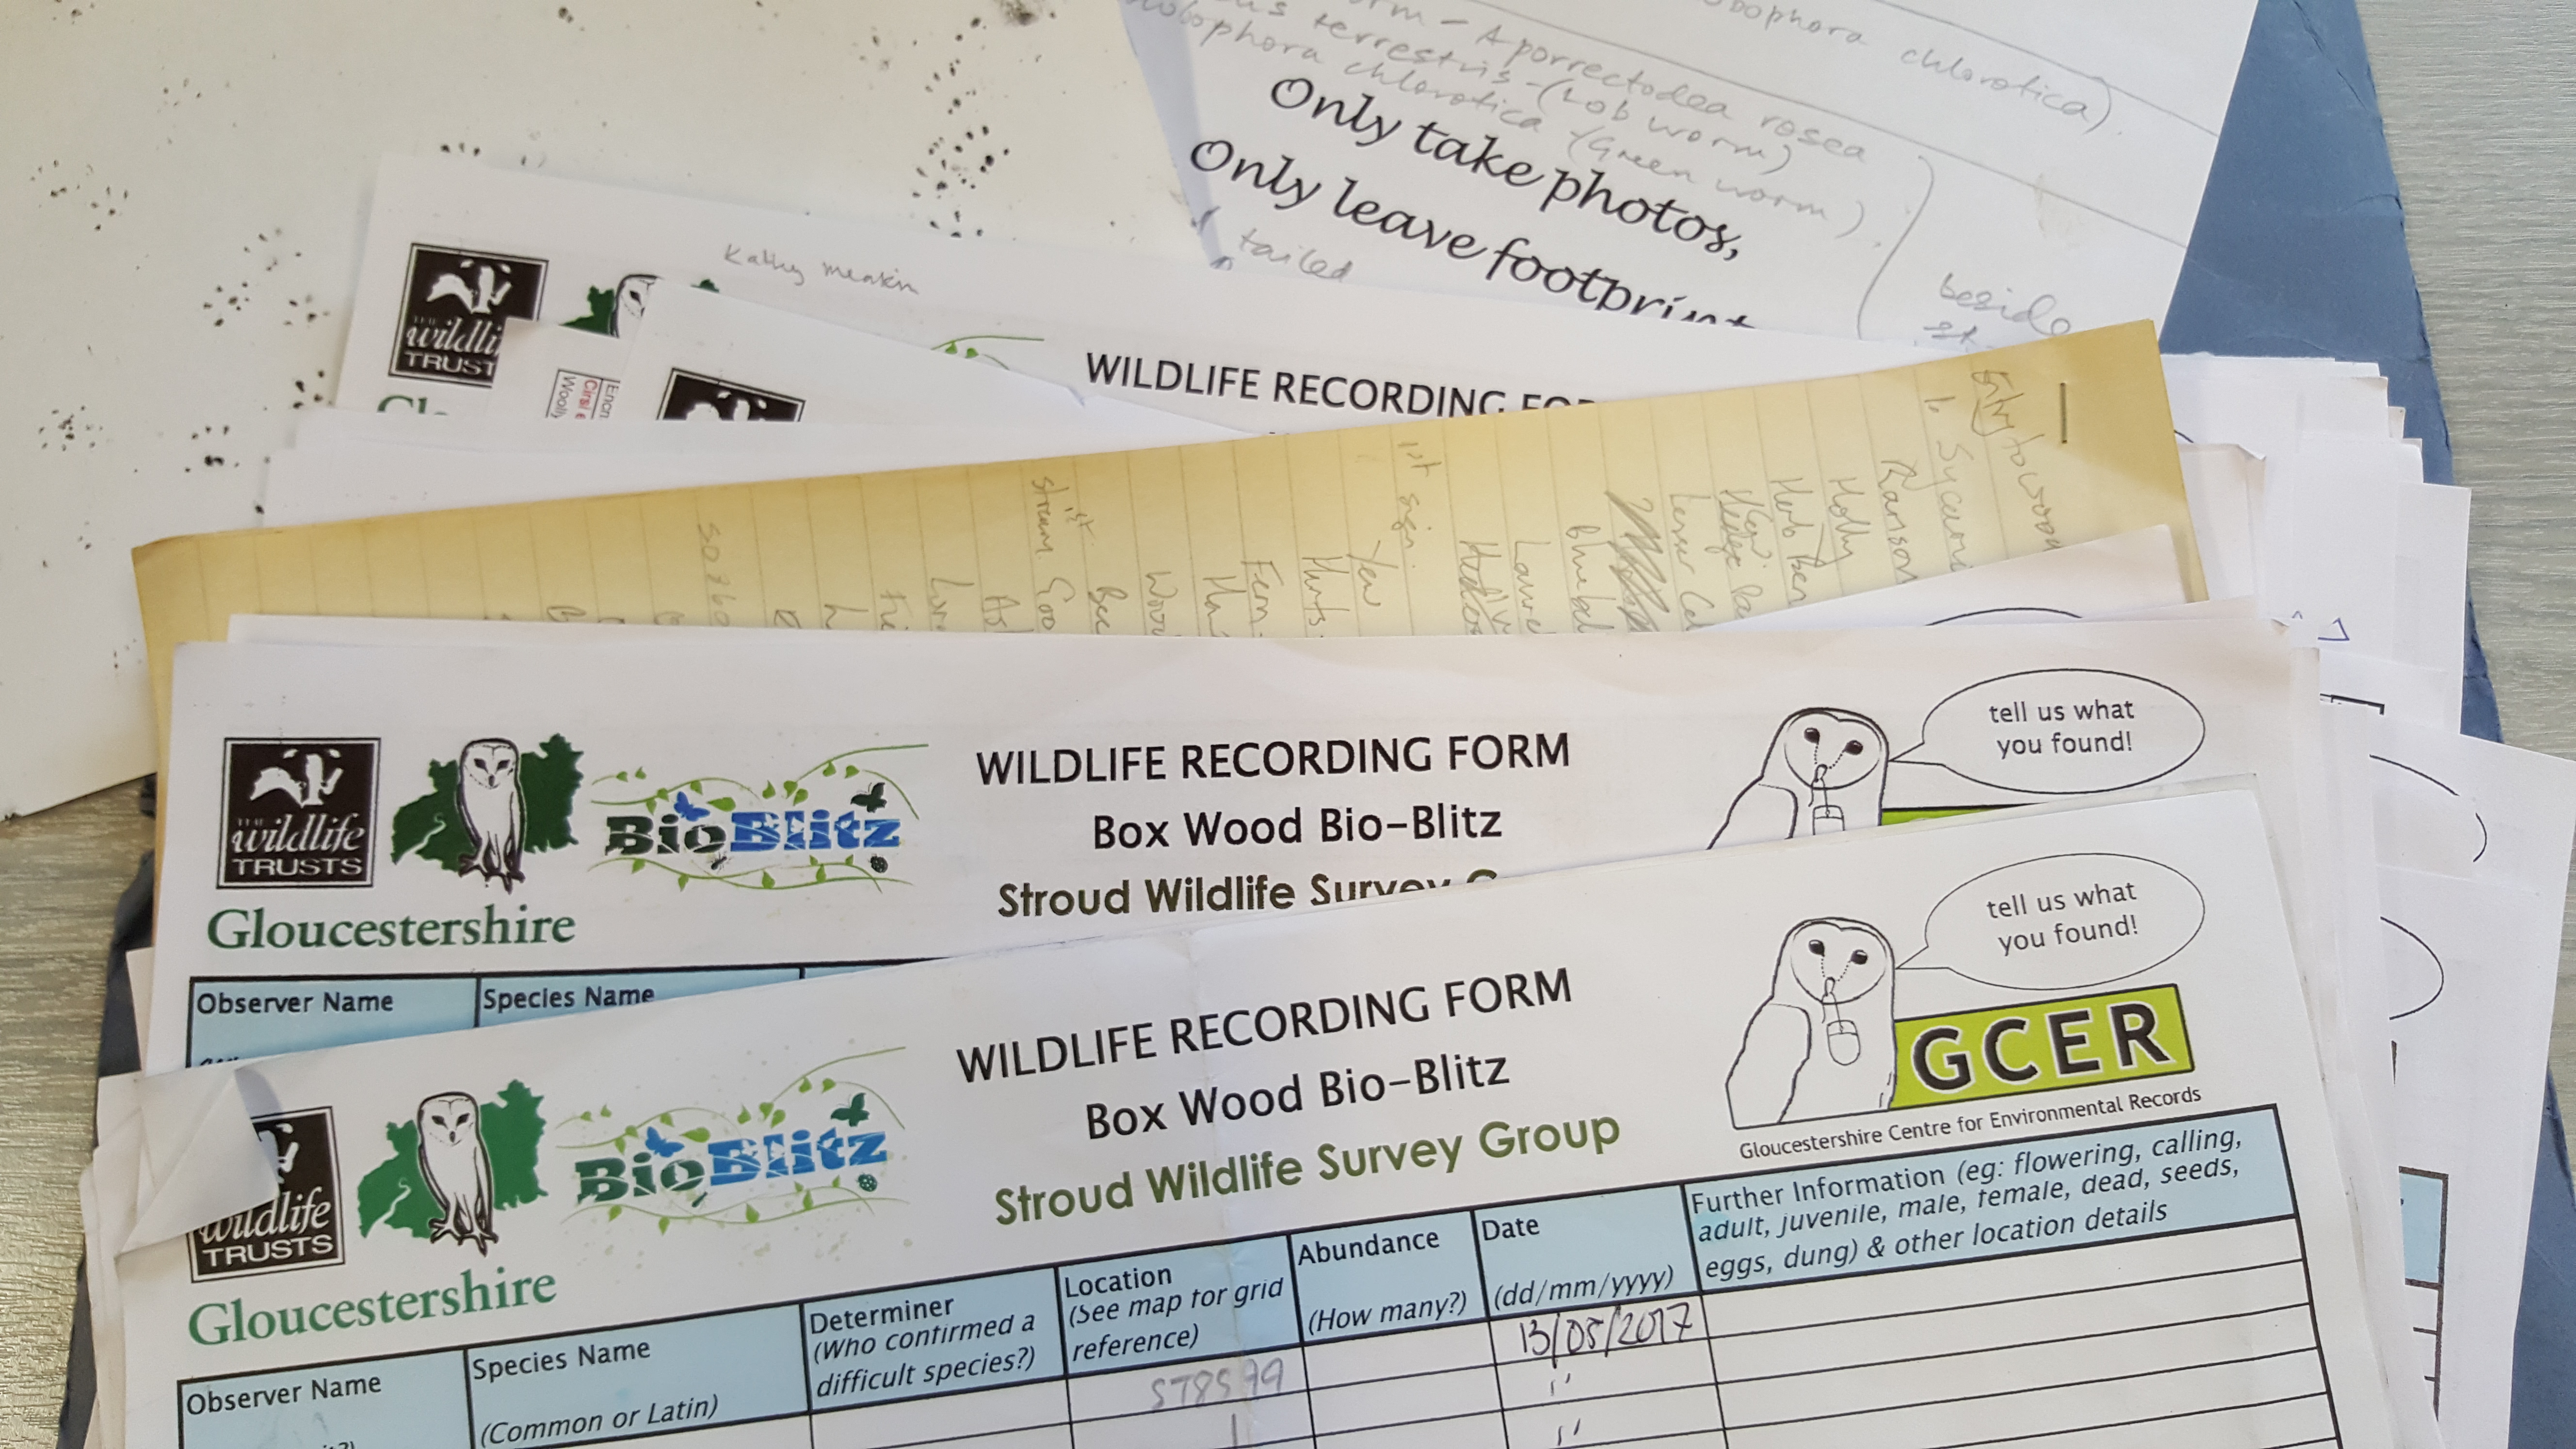 Bioblitz survey forms and pawprint tracks from hedgehog tunnels